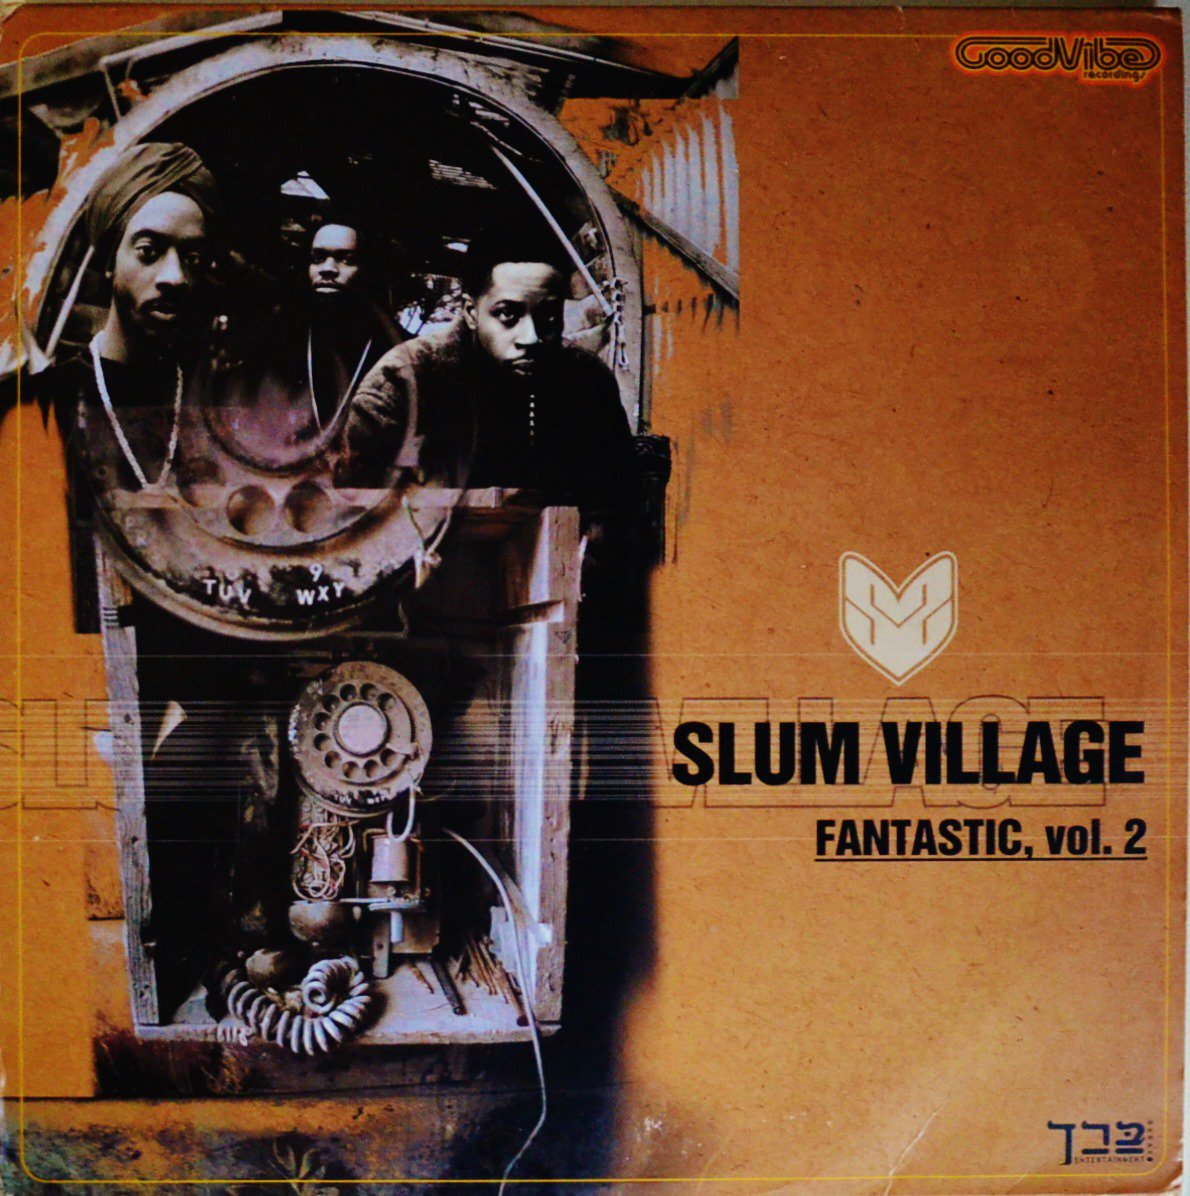 SLUM VILLAGE / FANTASTIC, VOL. 2 (3LP)